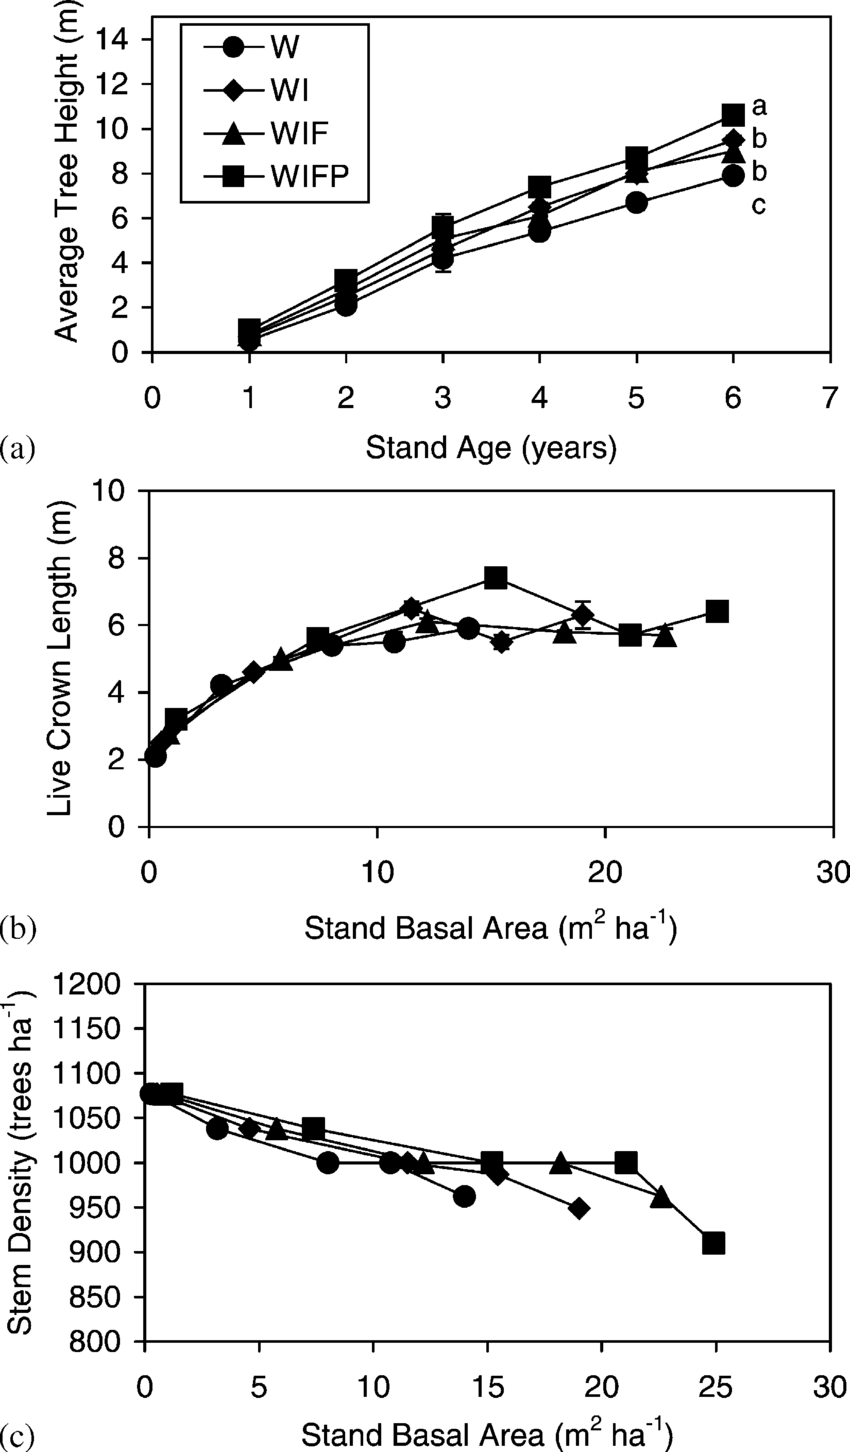 hight resolution of average tree height in relation to stand age a and live crown length b and stem density c in relation to stand basal area of loblolly pine in